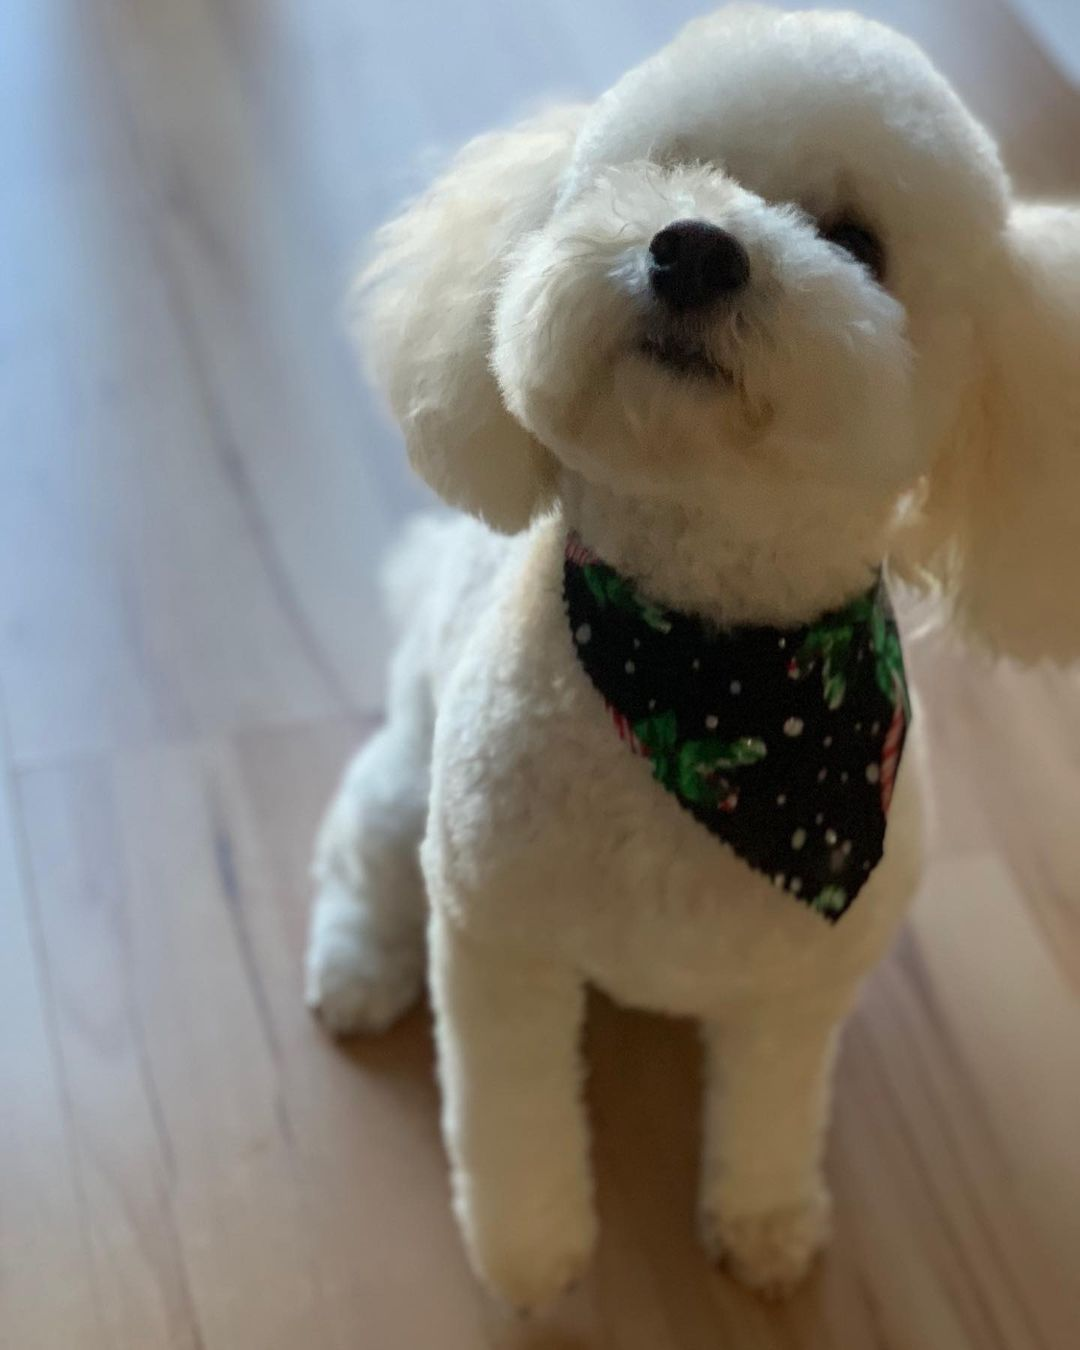 LBI Spa Day today & I got a Christmas kerchief  Ready for the holidays!!  .         …